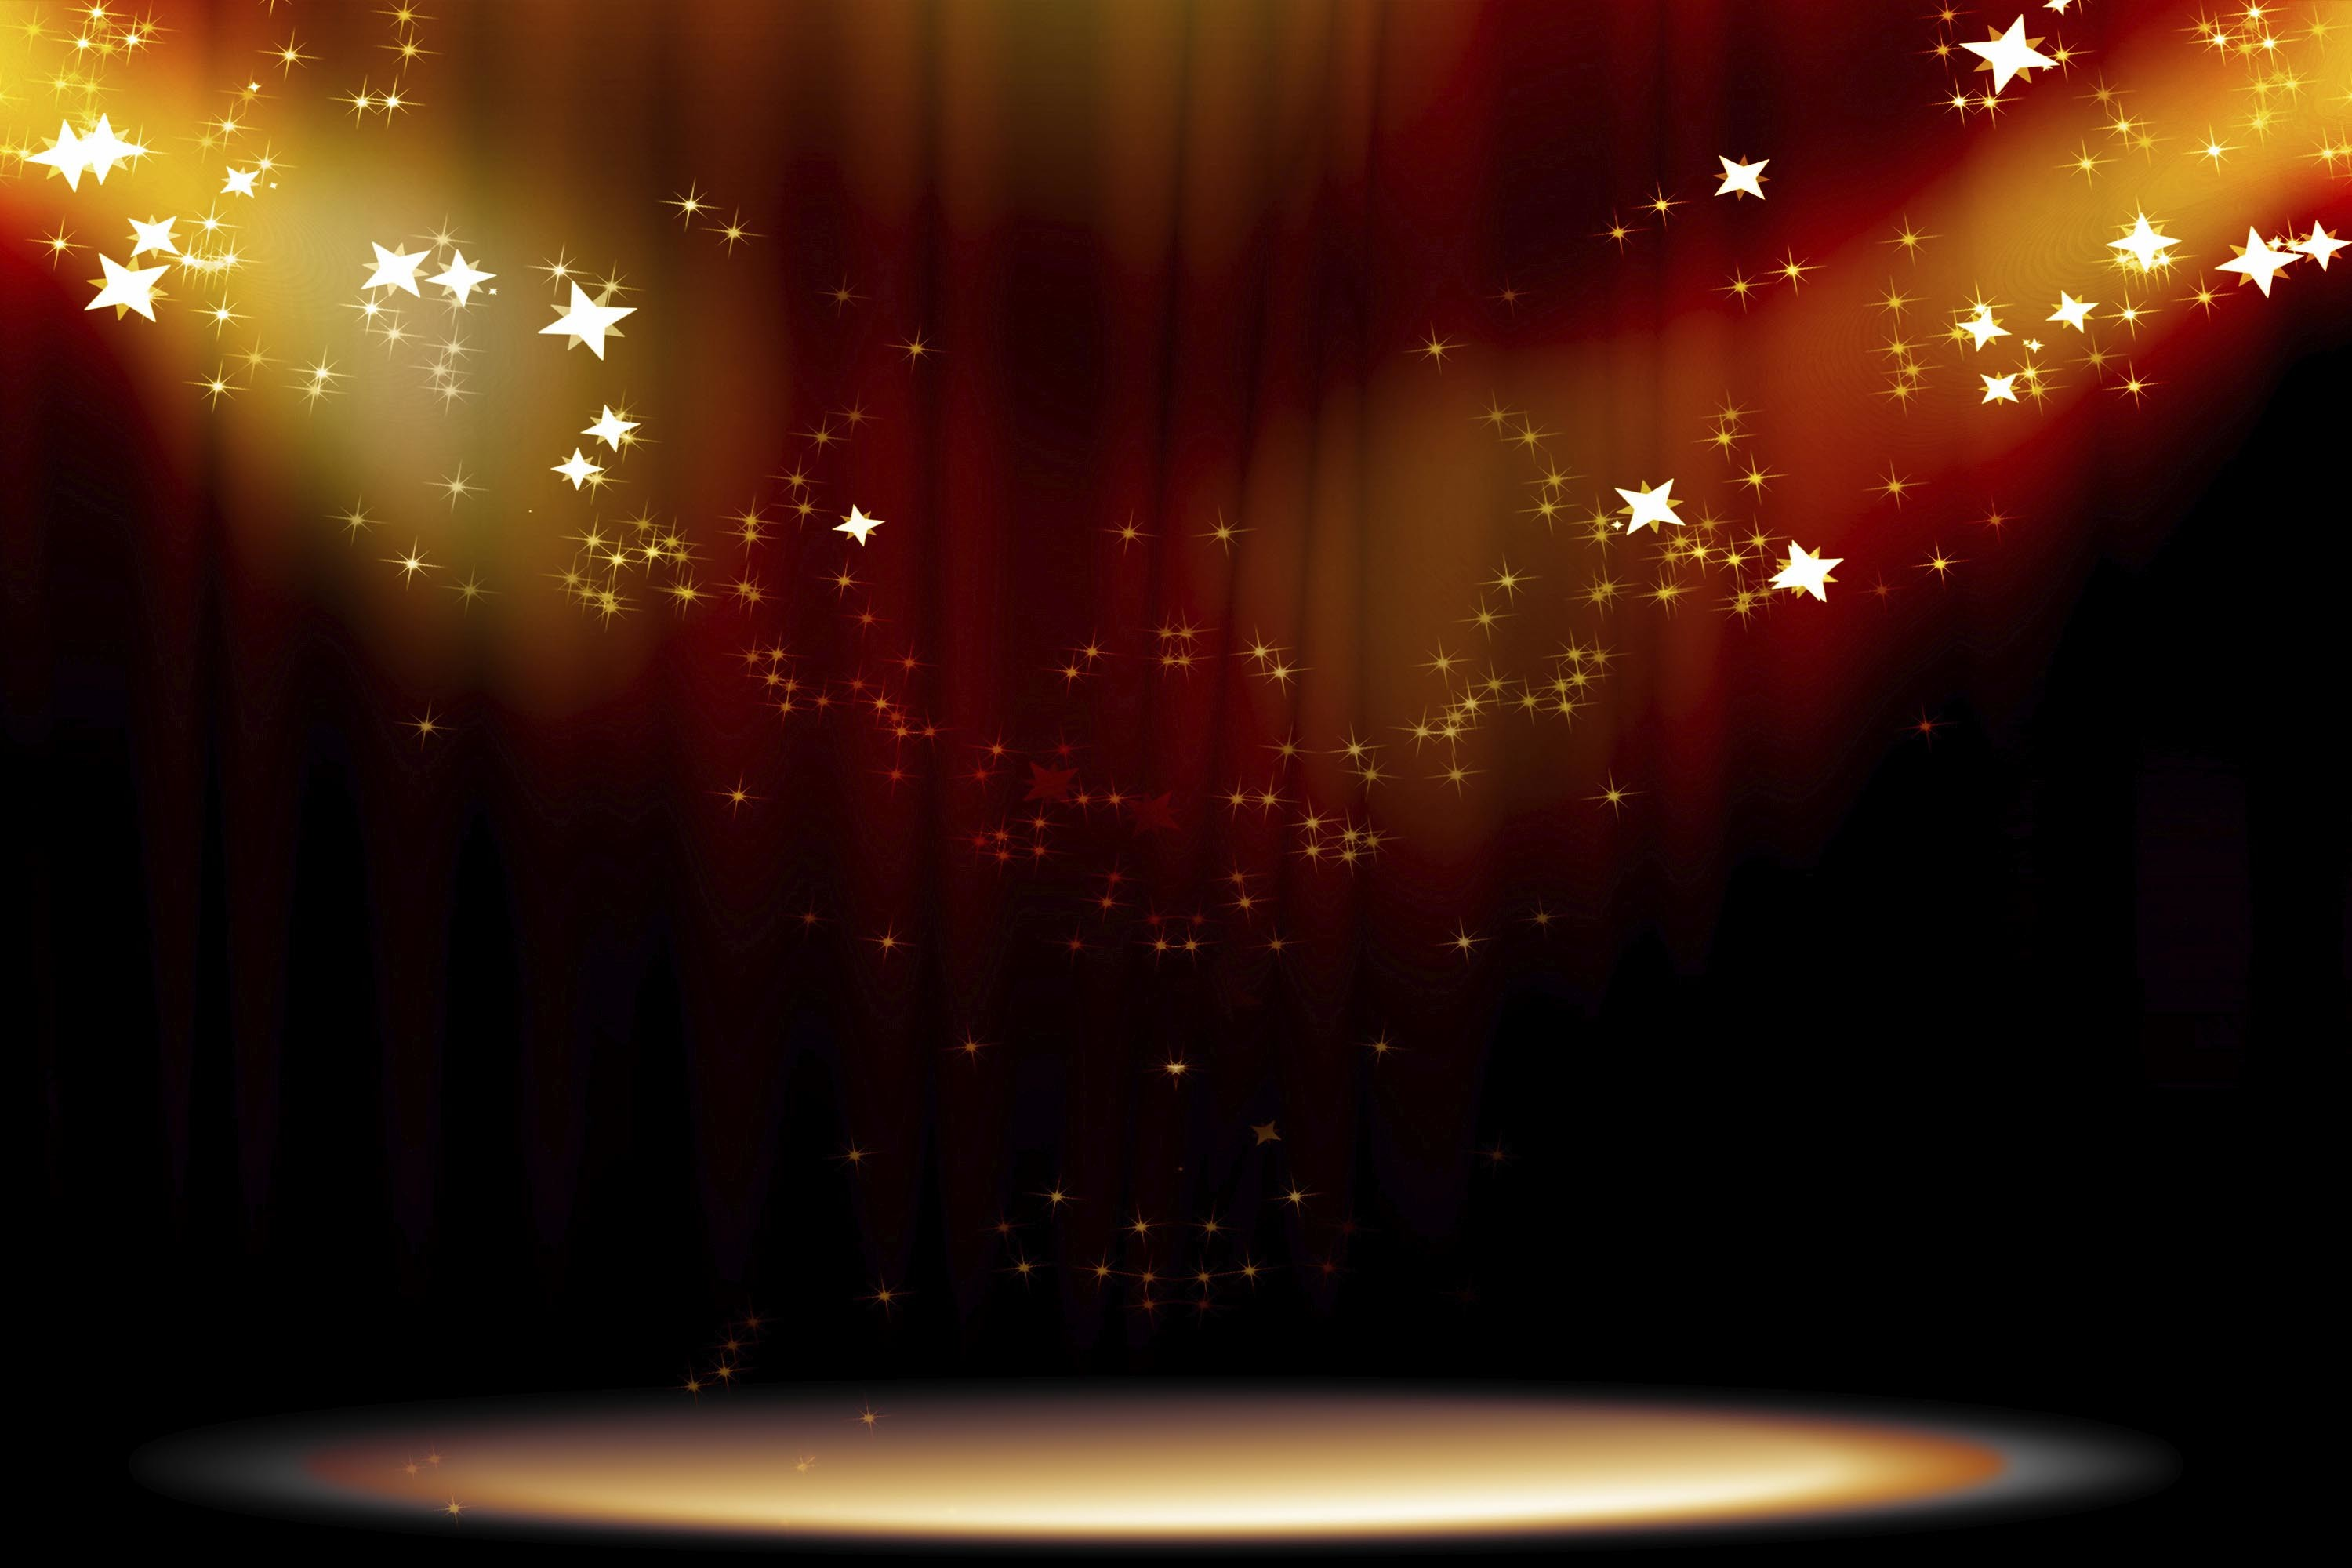 Stage lighting wallpaper 68 images for Where to get wallpaper